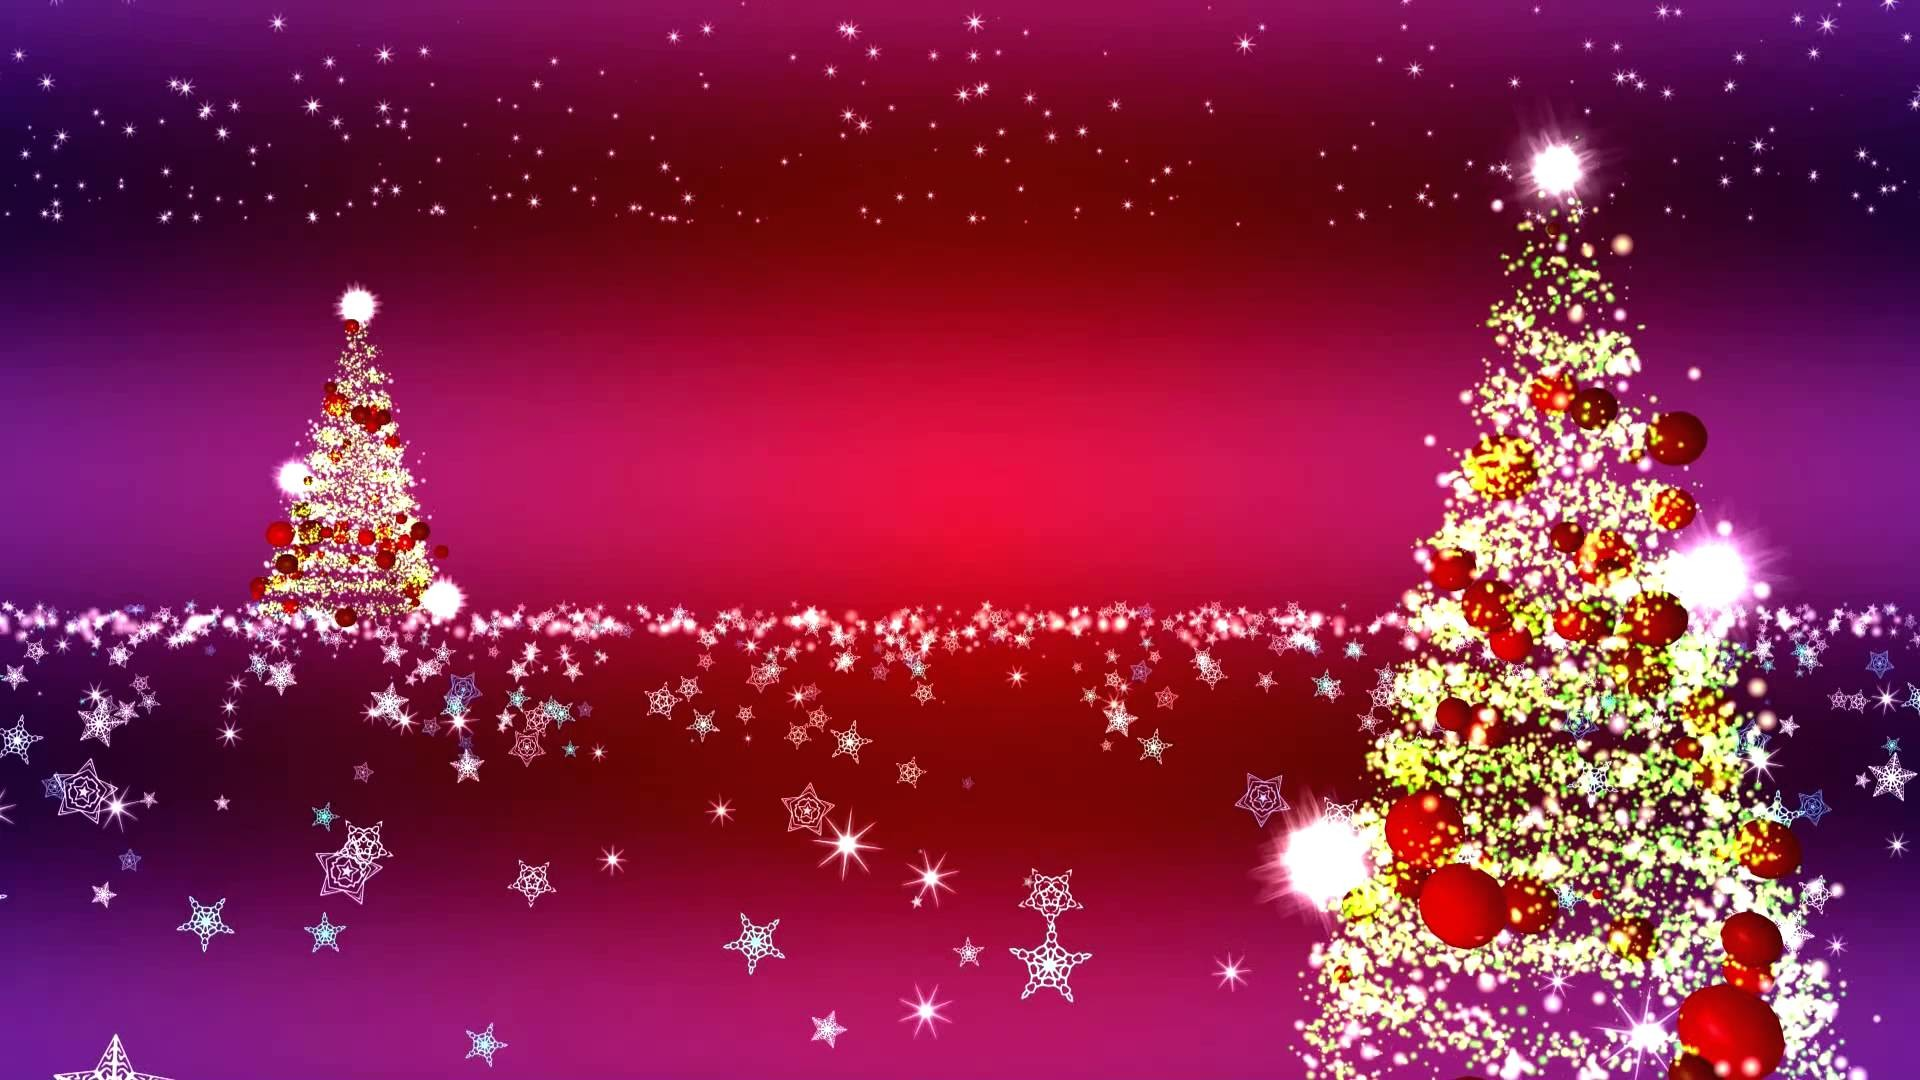 15 158615 2015 christmas background hd wallpapers images photos animated